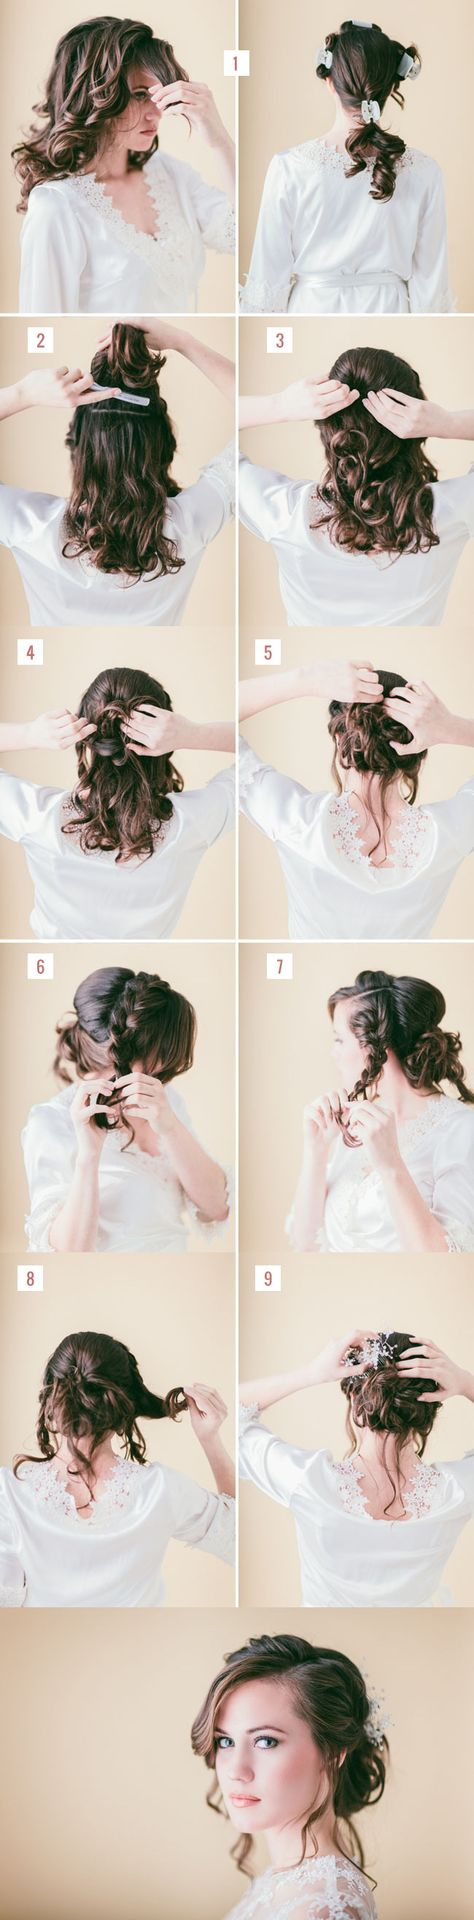 best images about hairu on pinterest coiffures chignons and updo